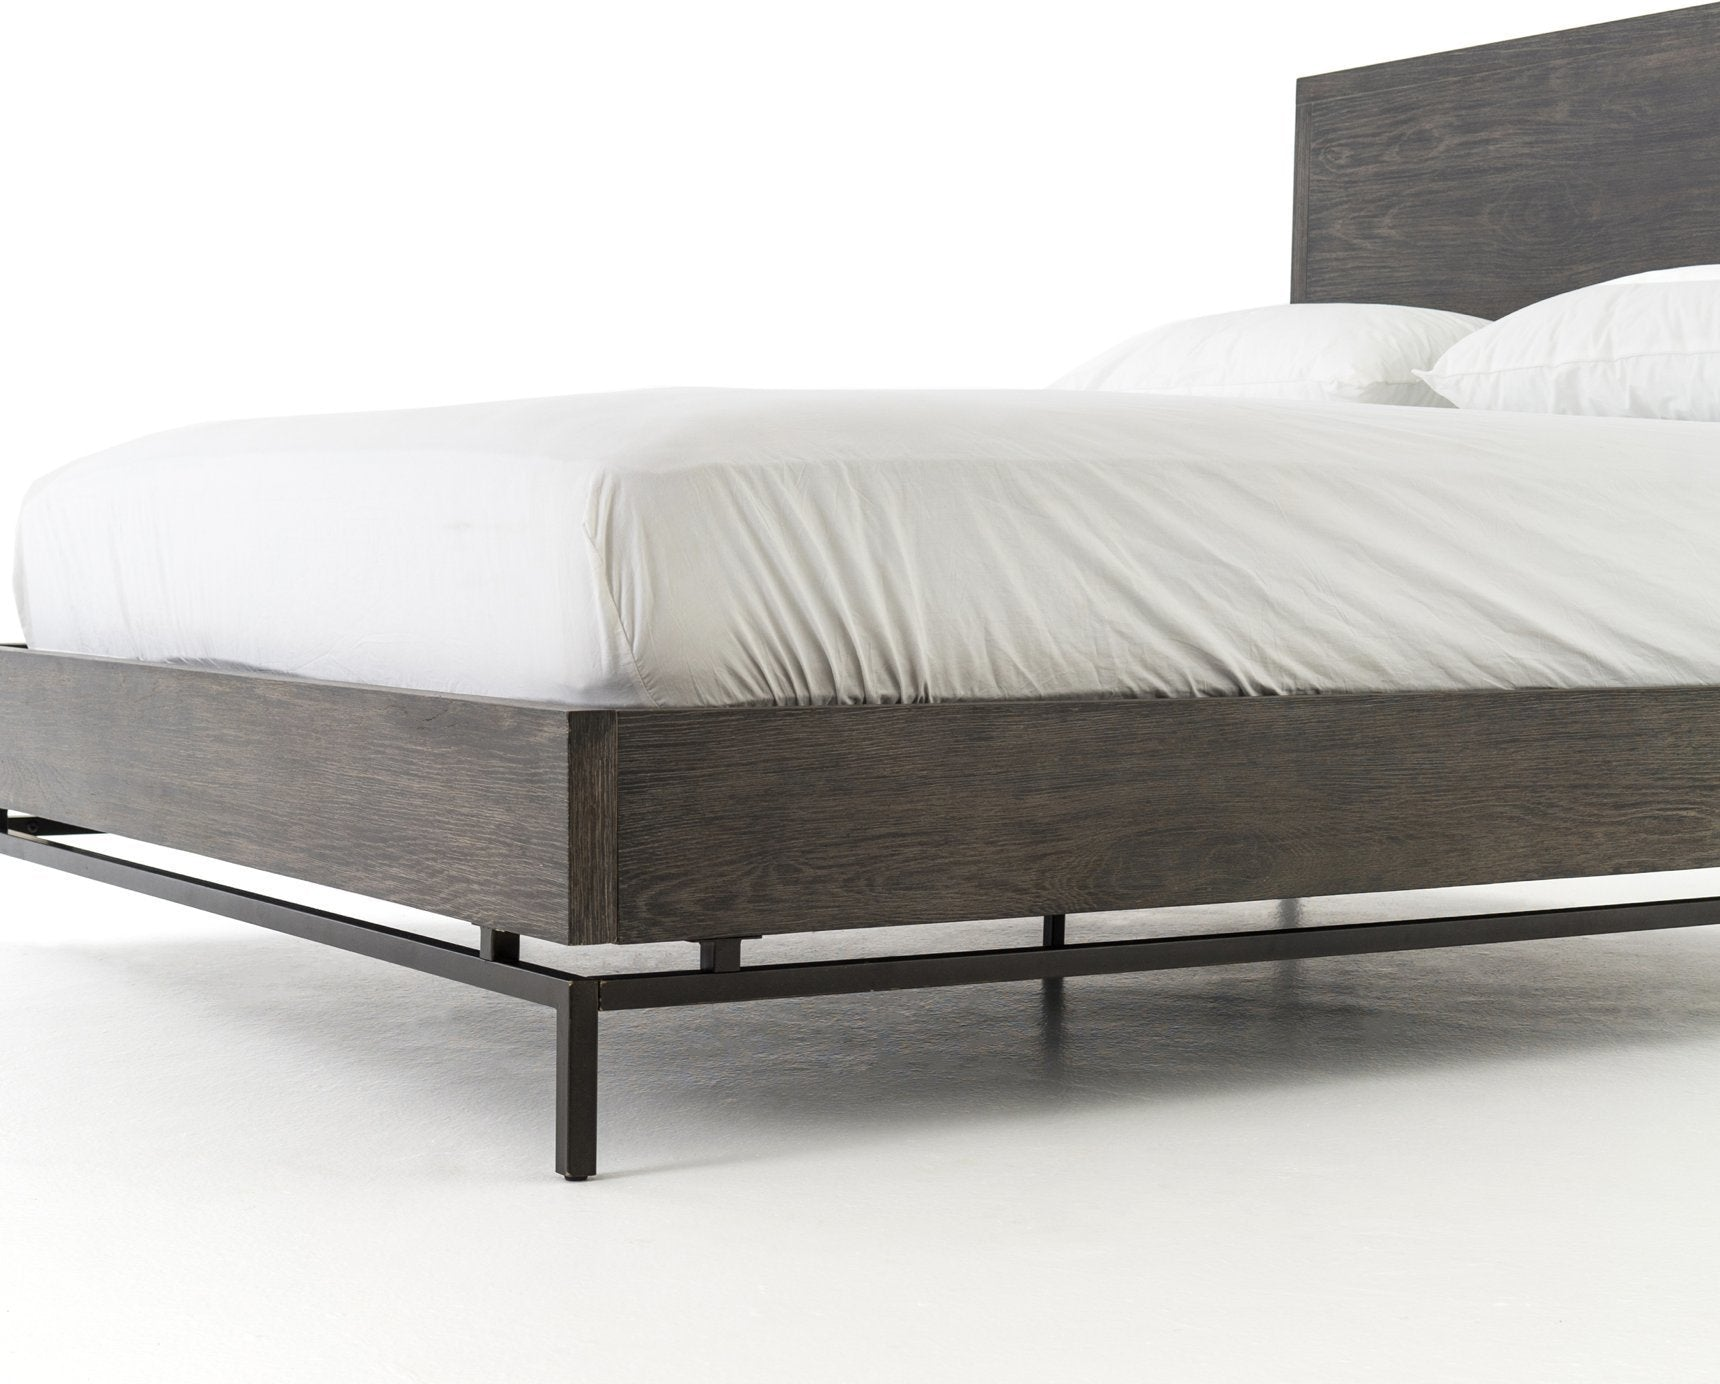 GIBSONS BEDS-furniture stores regina-Hunters Furniture